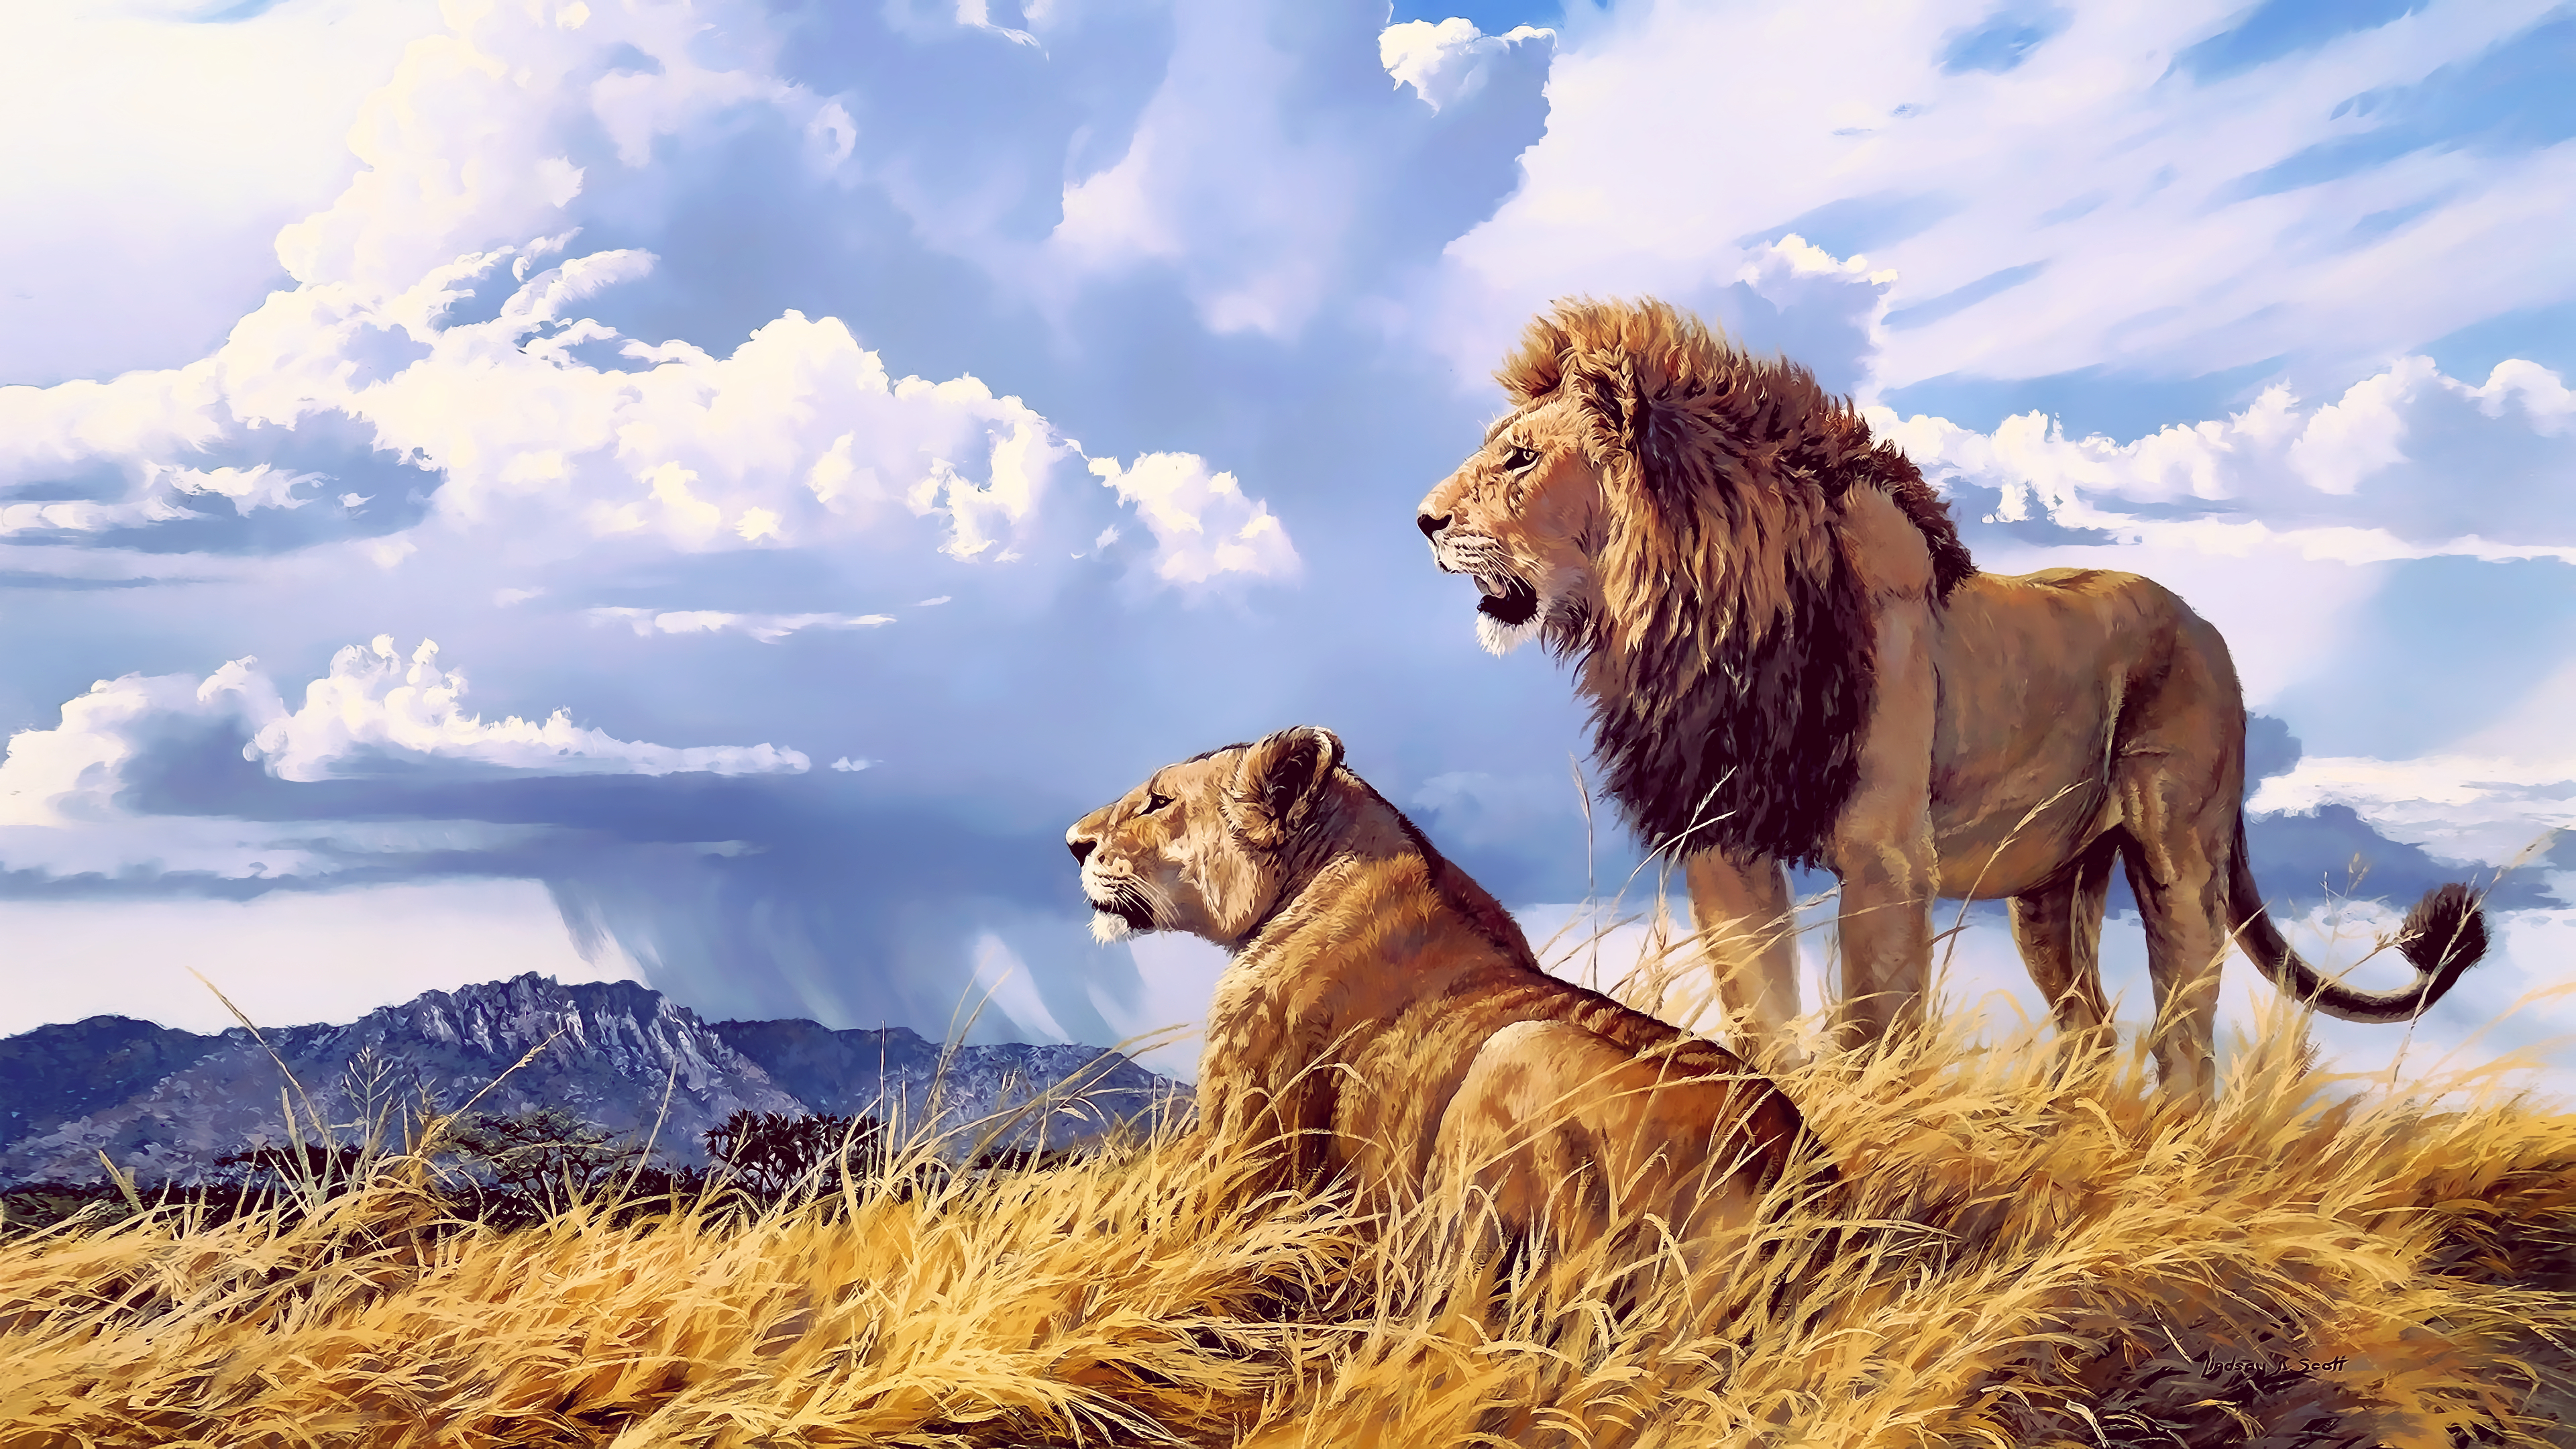 Lion Lioness Artwork 4k Hd Animals 4k Wallpapers Images